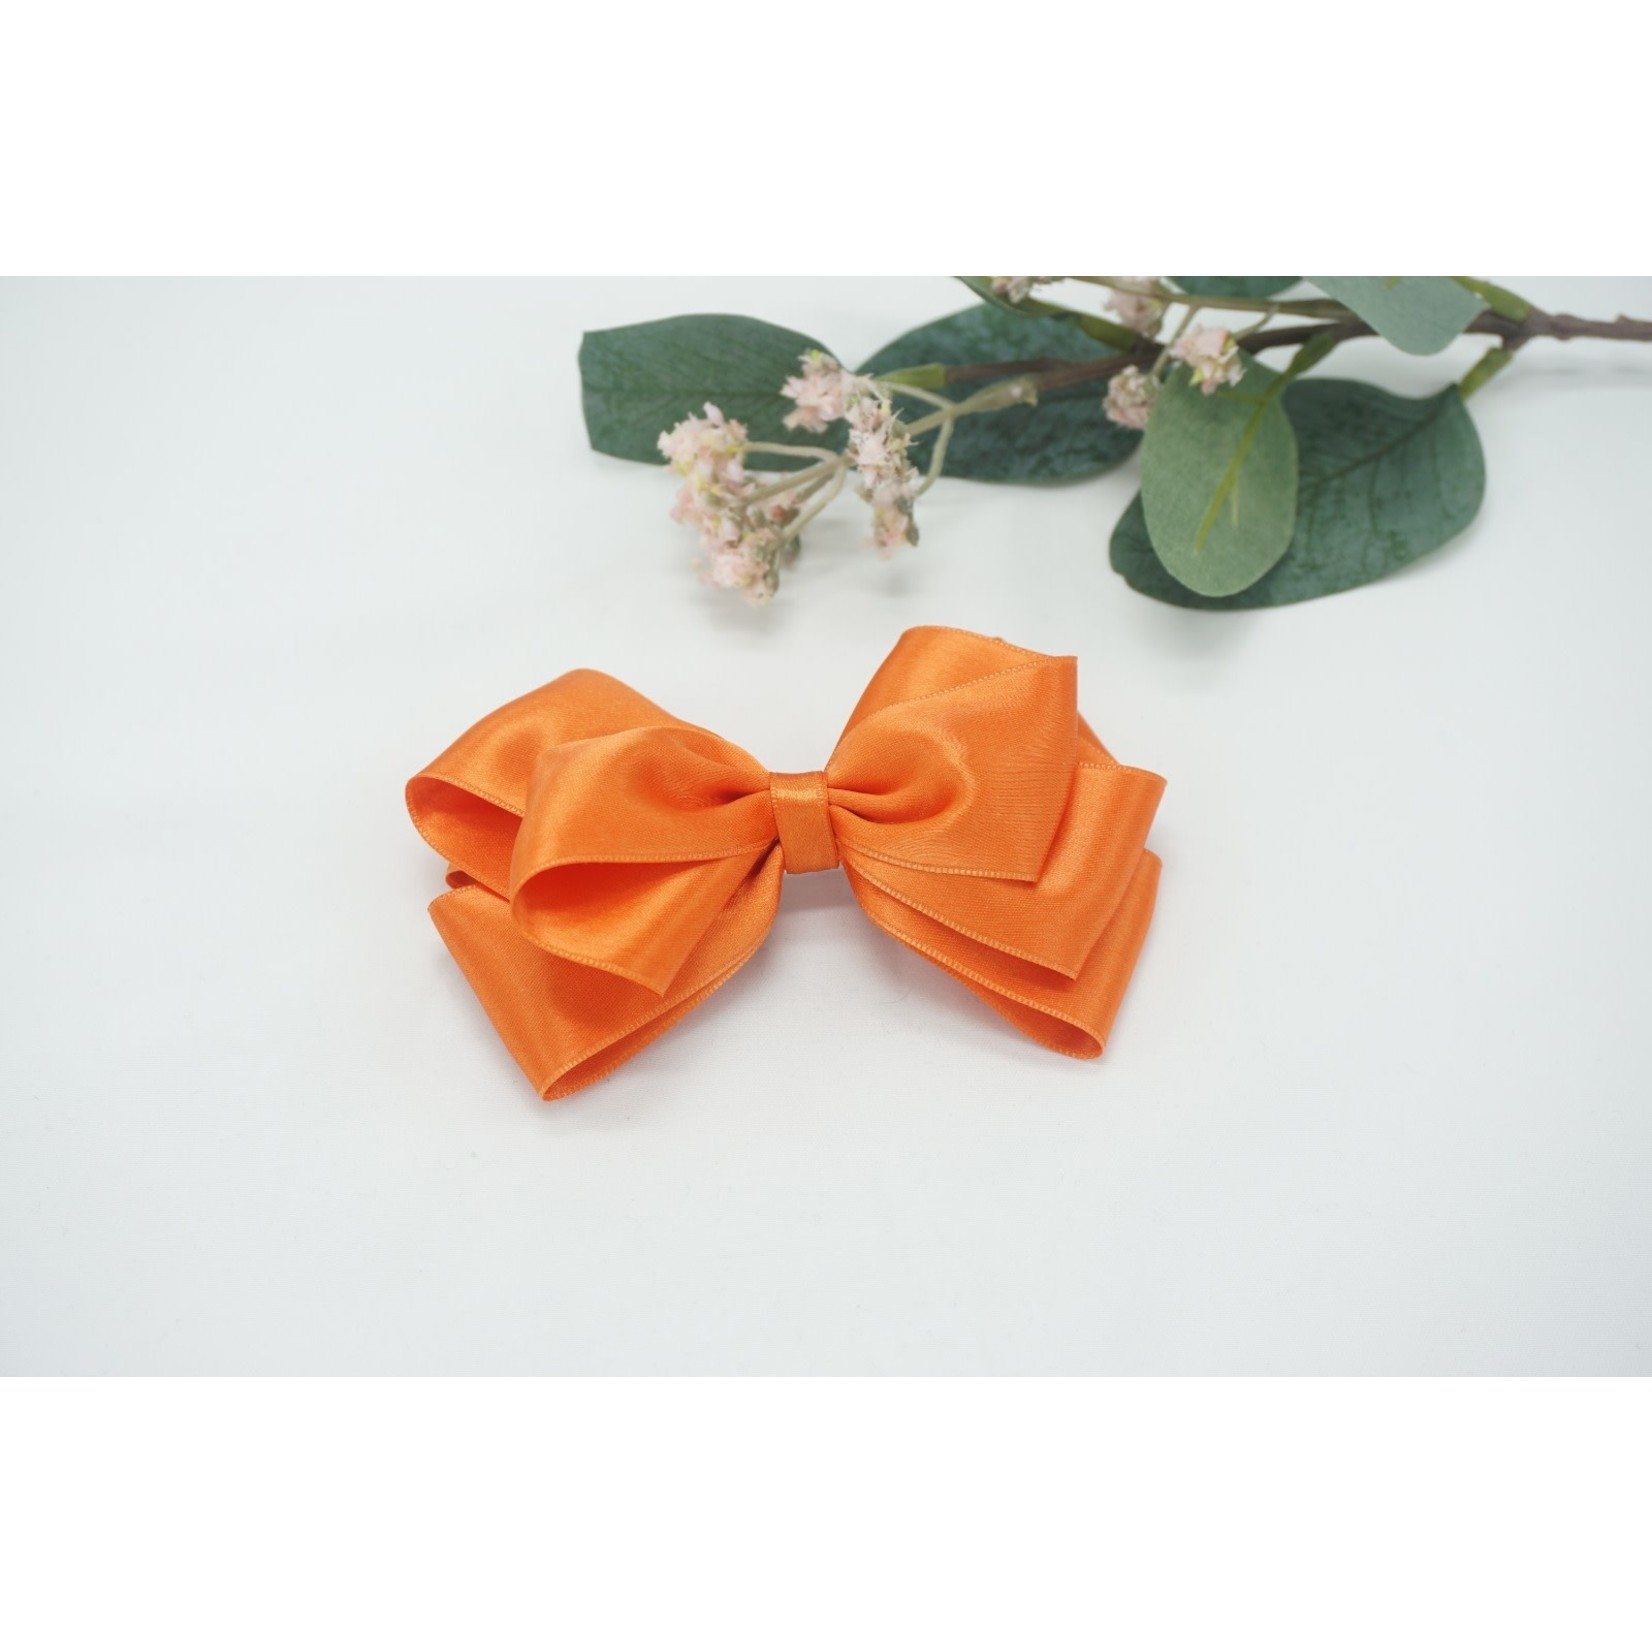 Butterfly Bow - Mani 12 cm